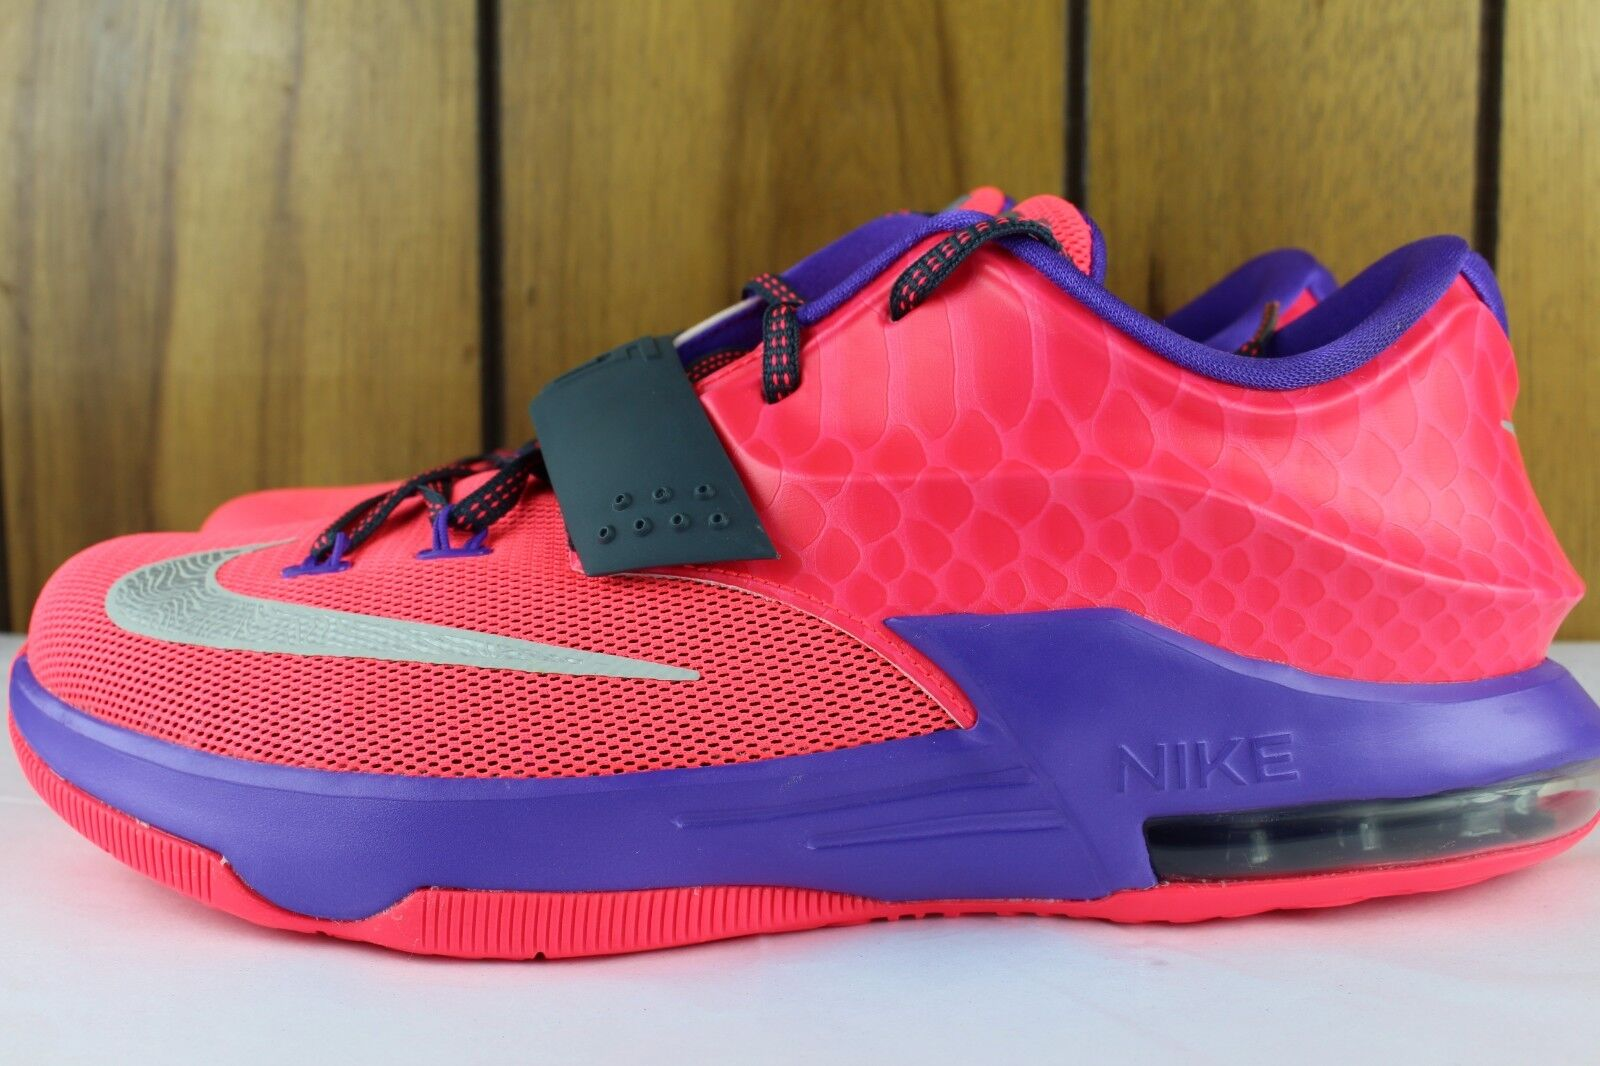 KD VII 7 GS HYPER PUNCH Taille 6.0 YOUTH SAME AS Femme Taille 7.5 BASKETBALL